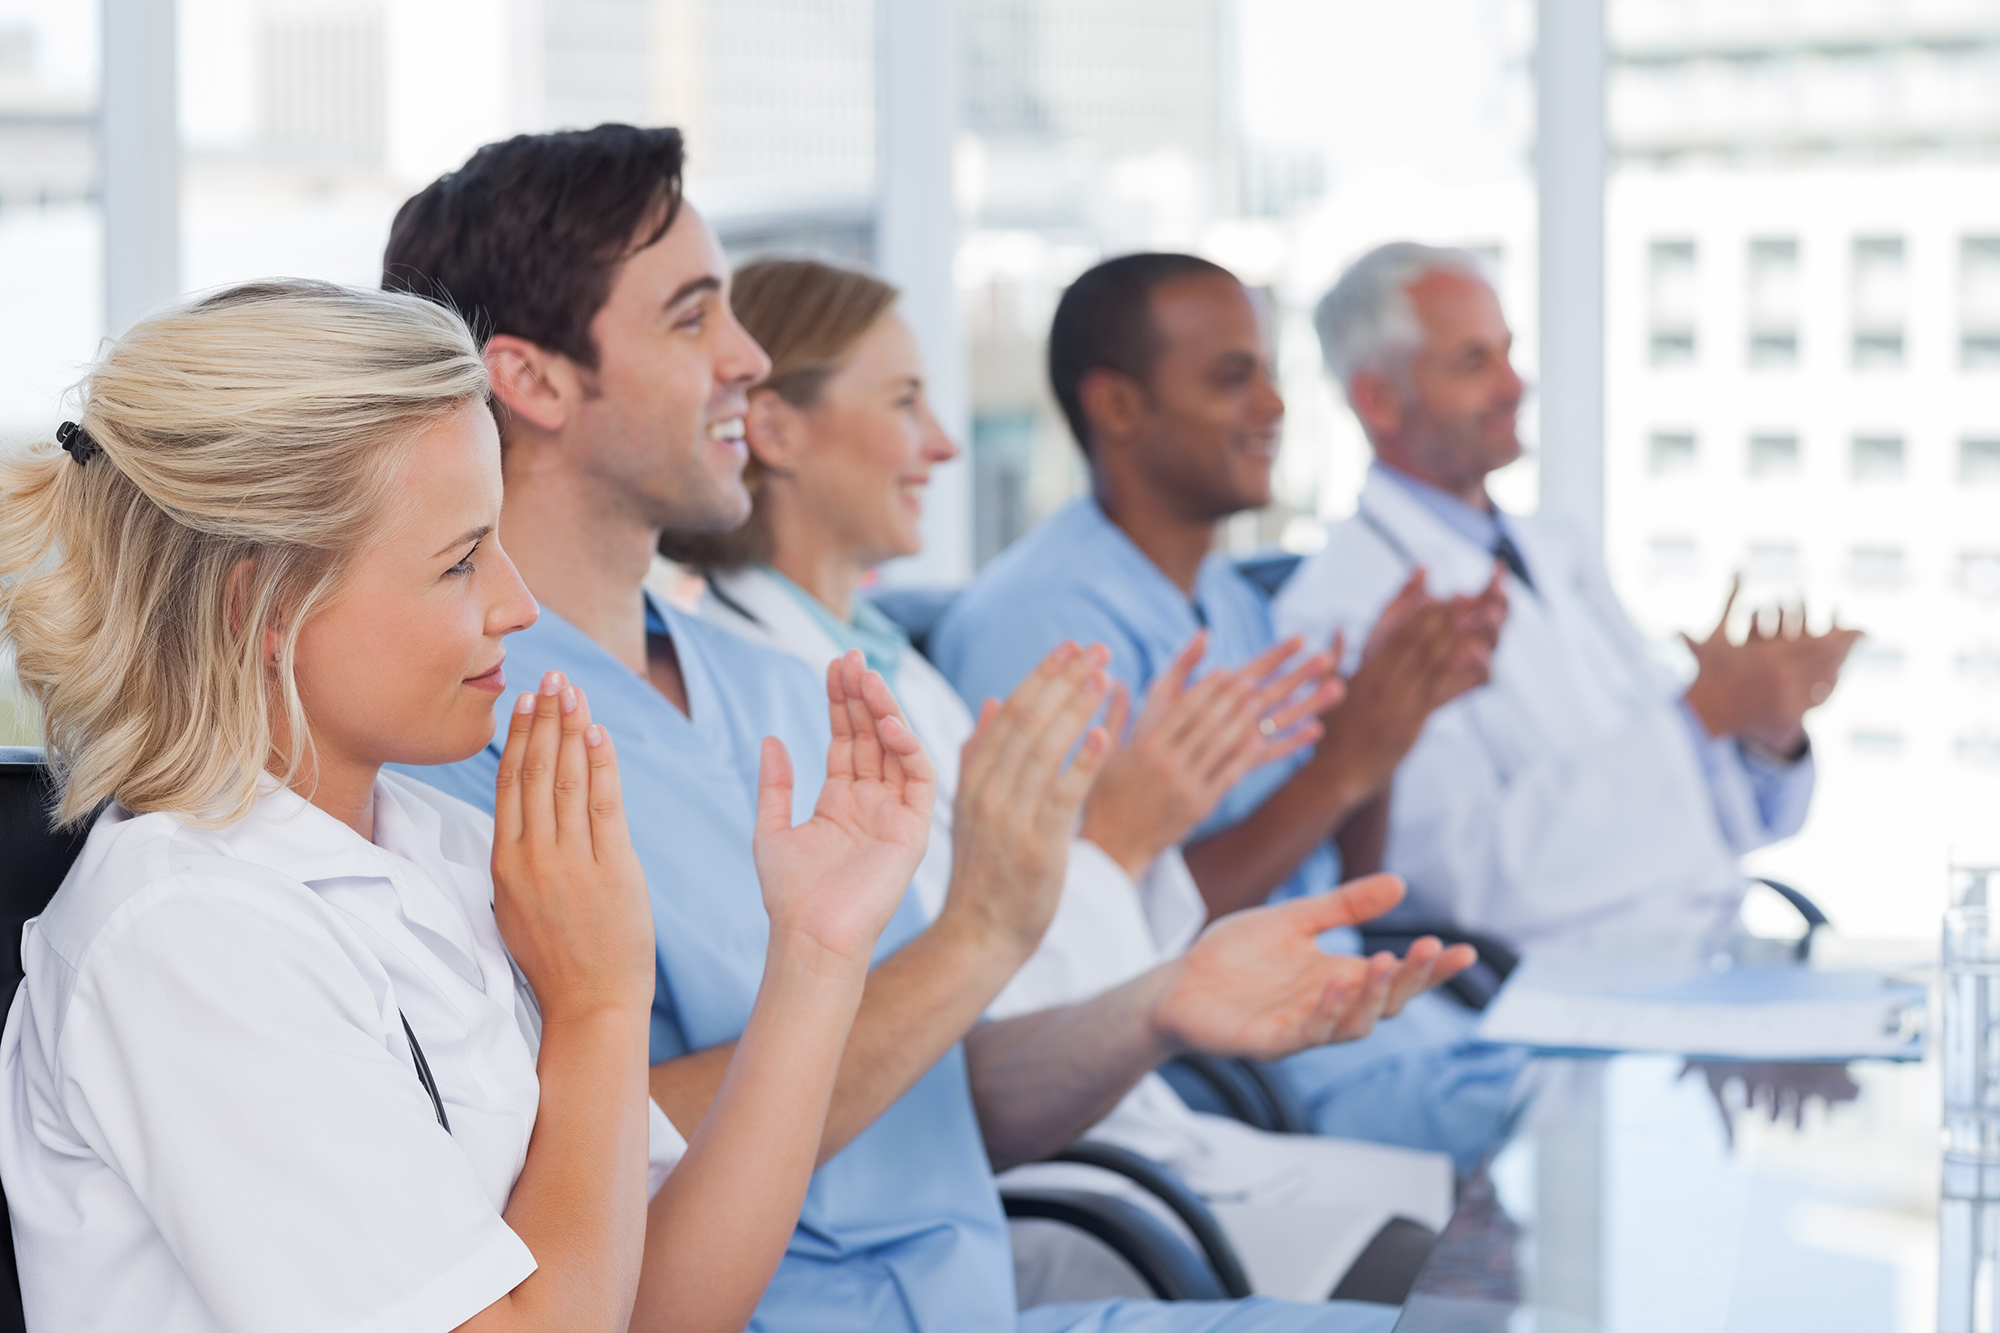 Medical team clapping hands during a conference